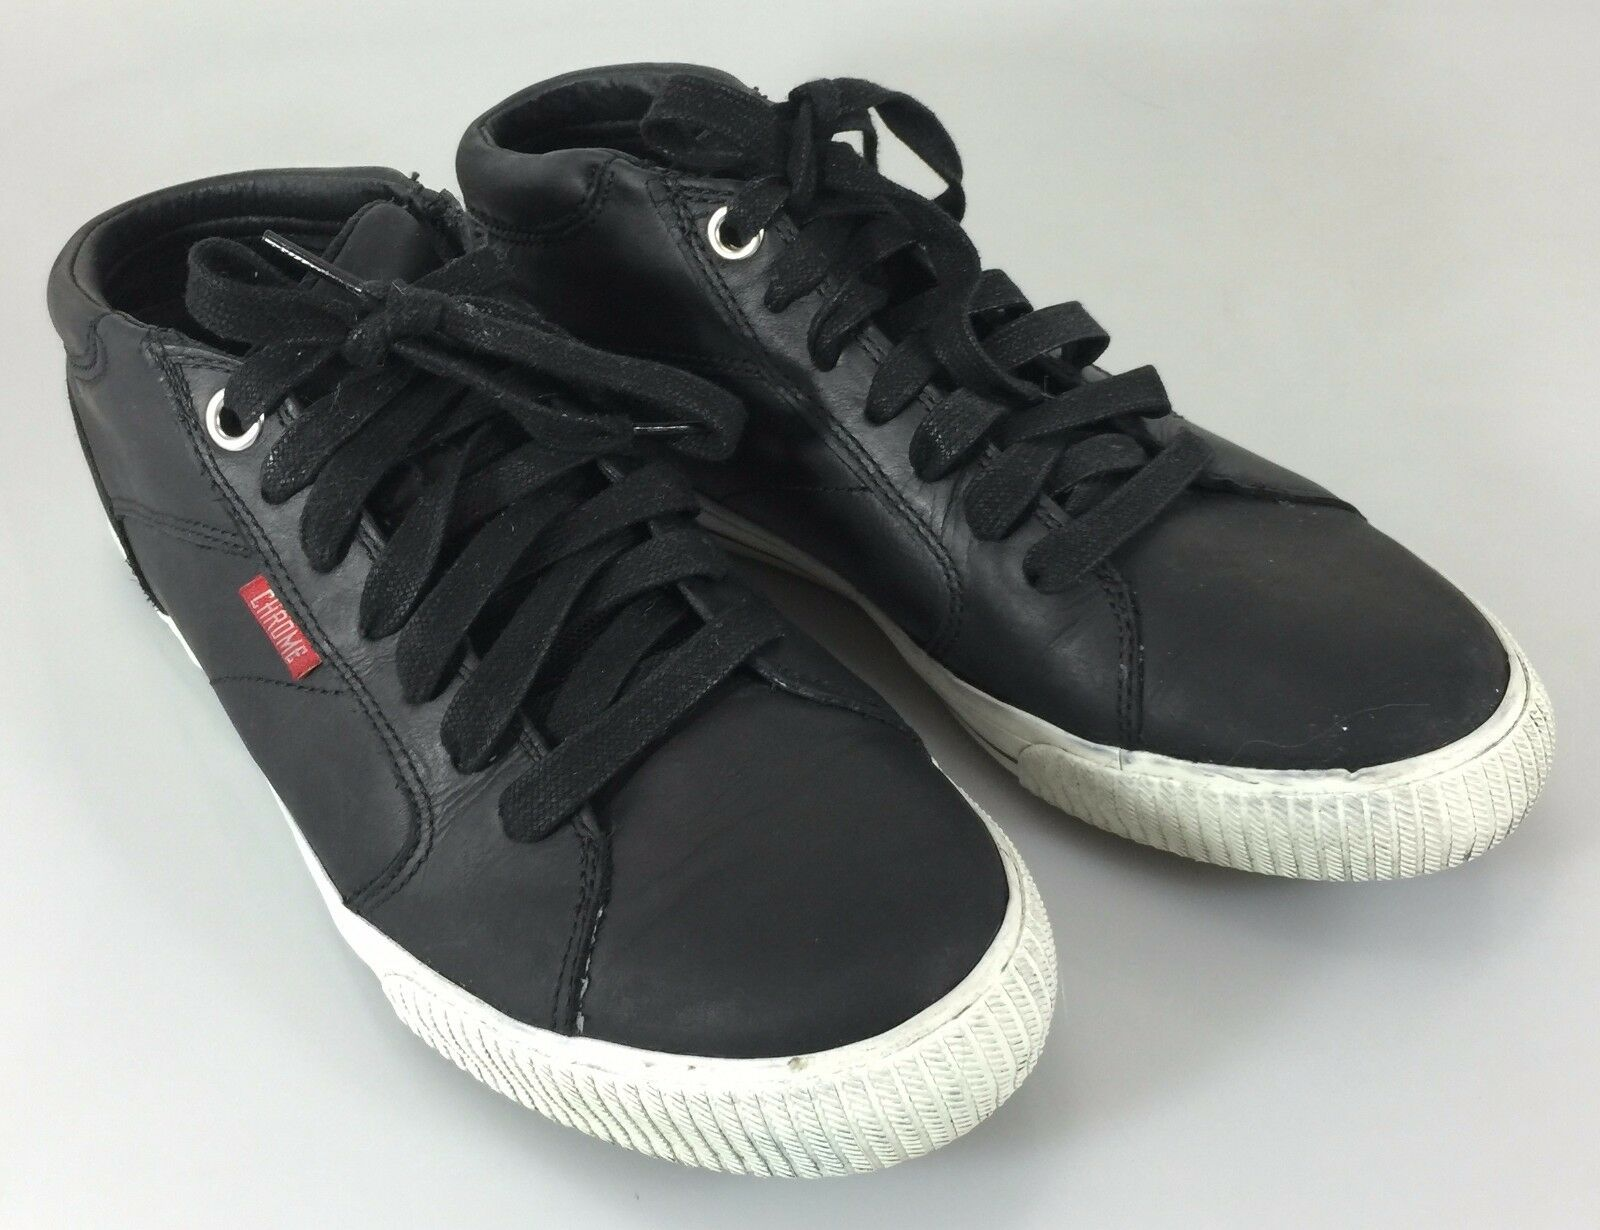 Chrome Homme 6.5 Noir Leather Gym Chaussures Sneakers Kicks